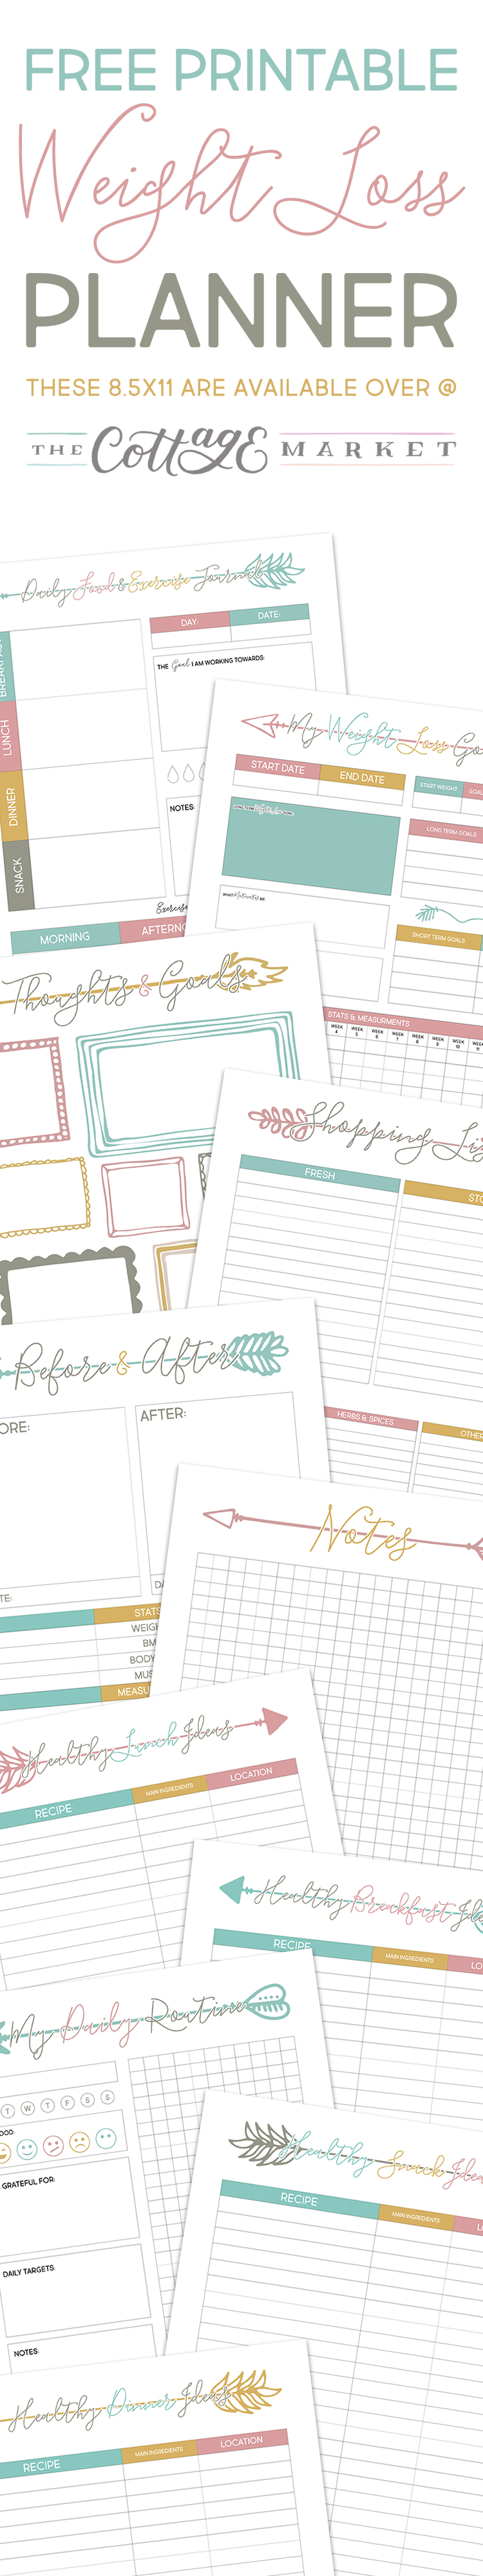 These free weight loss printables are helpful for tracking health habits.